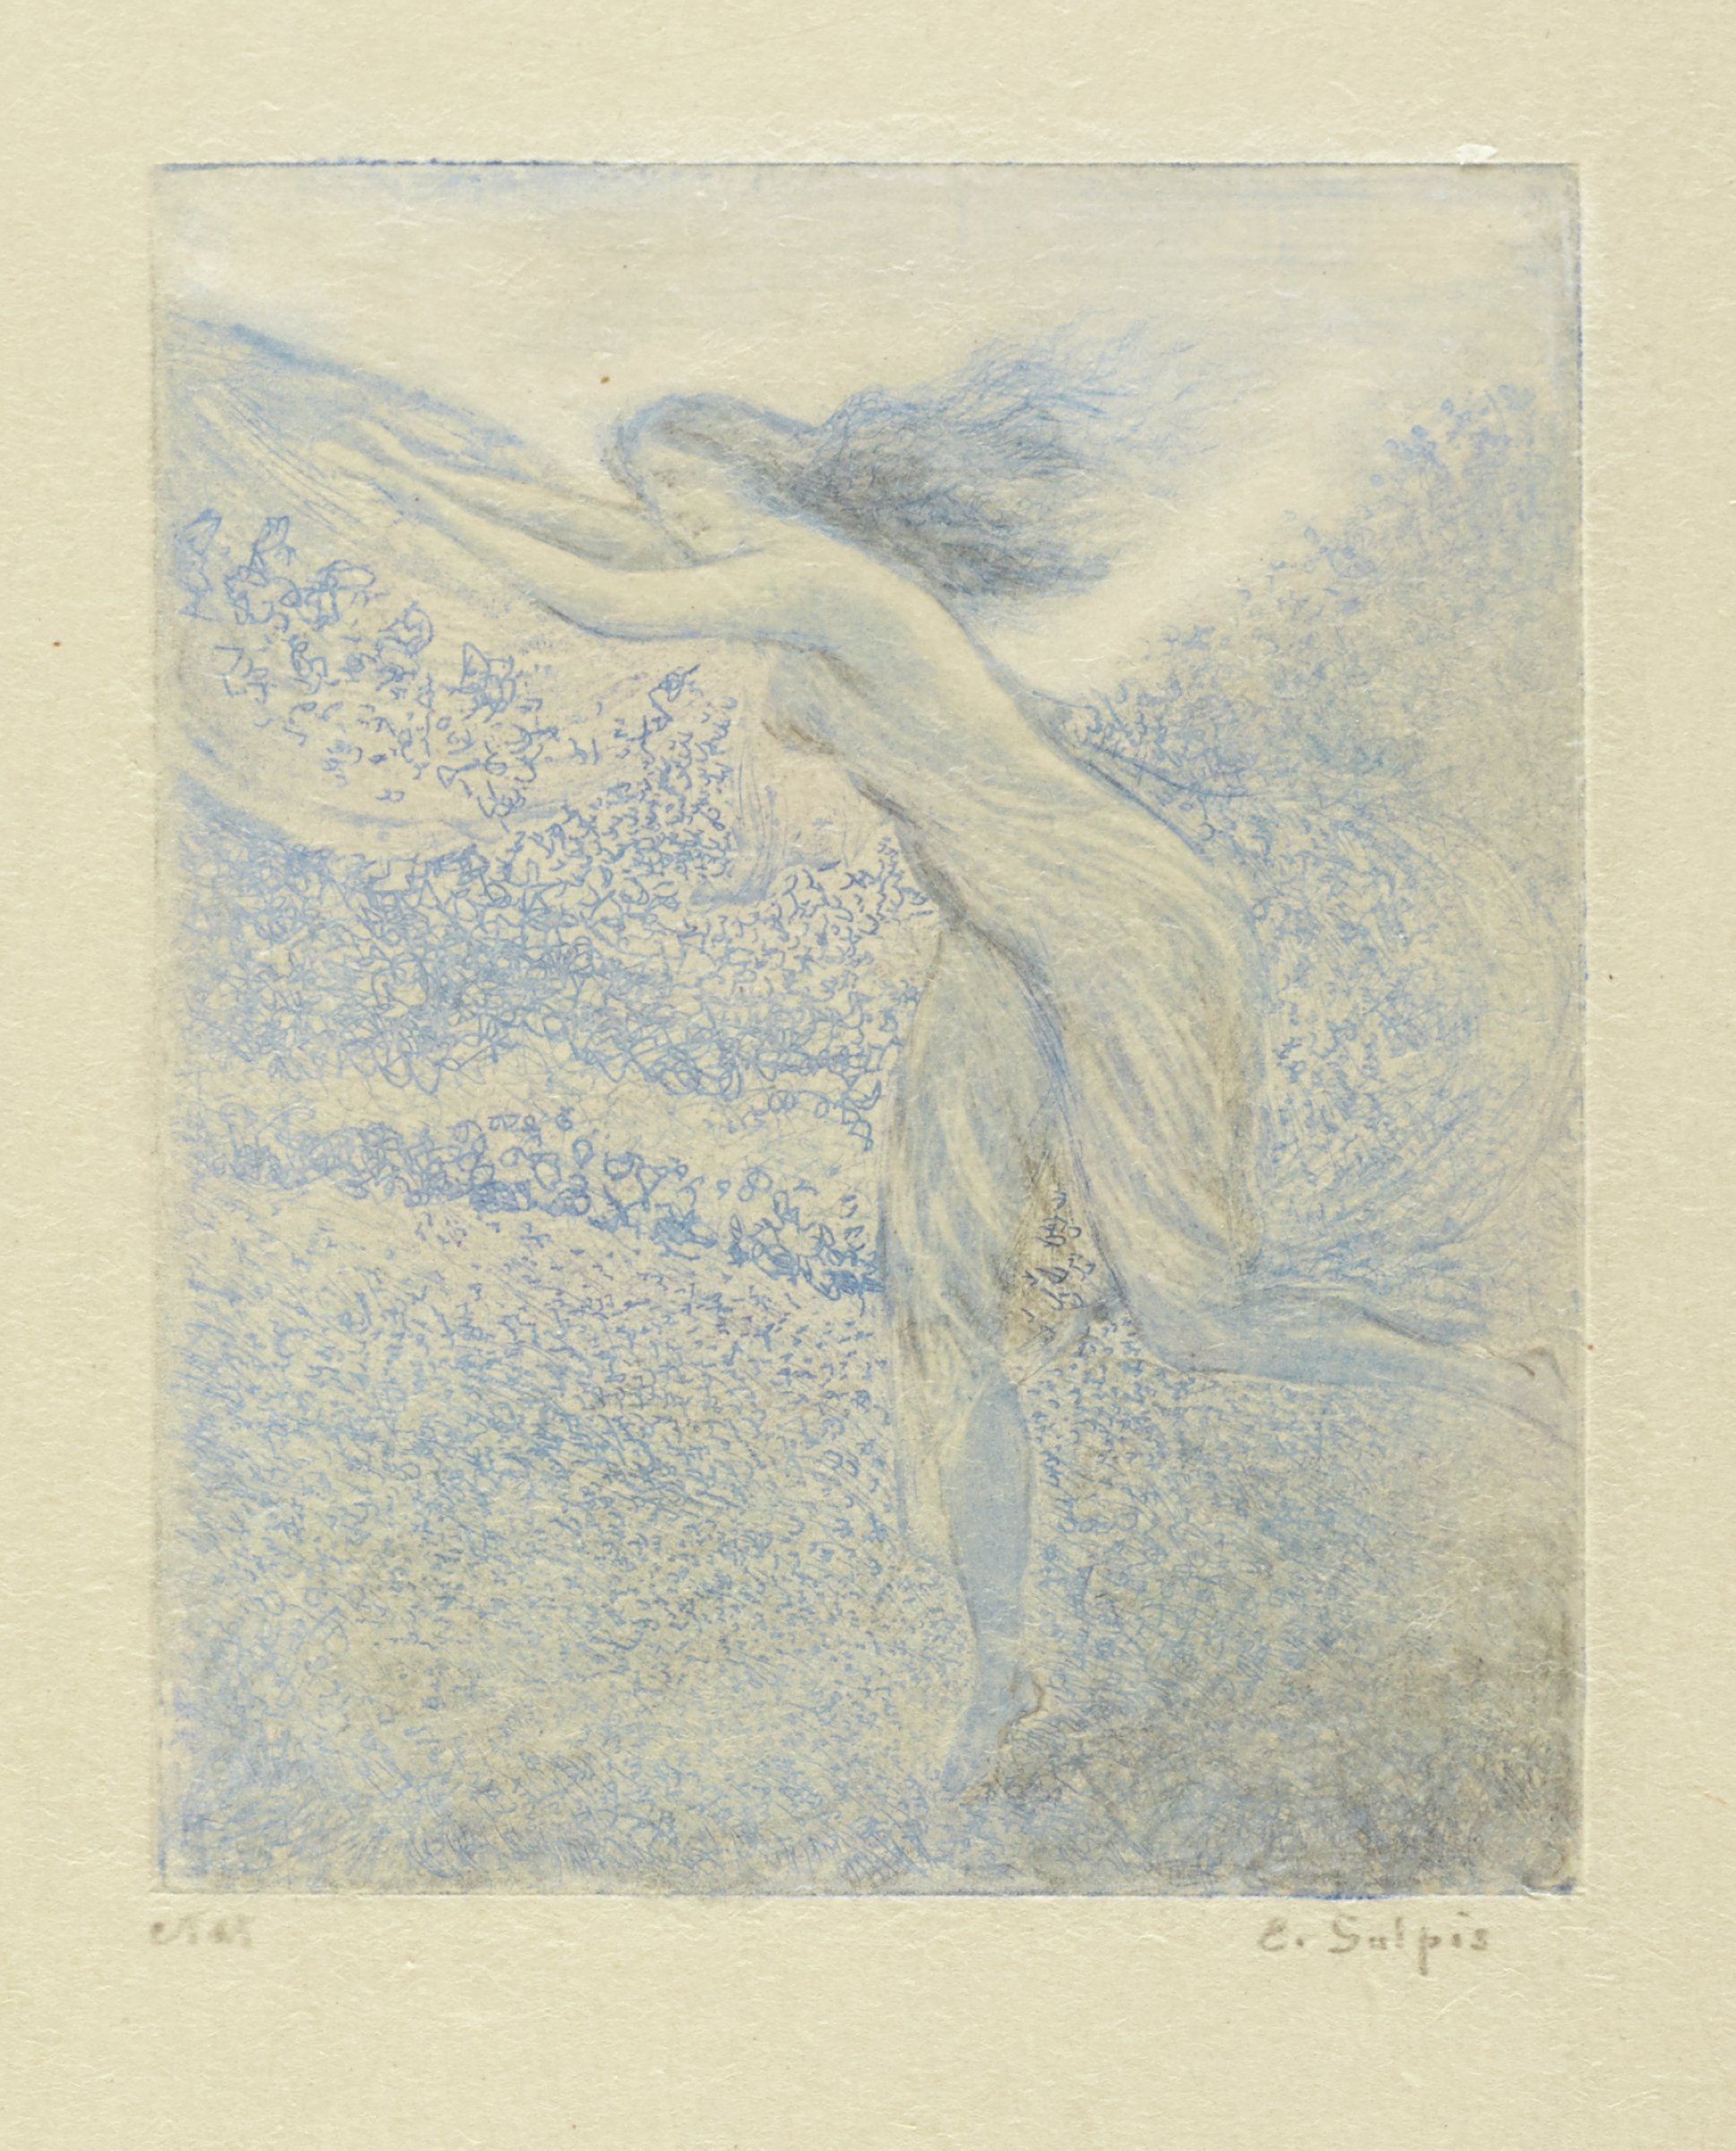 A woman with a sheer flowing dress and long hair runs towards the left with arms stretched outward.